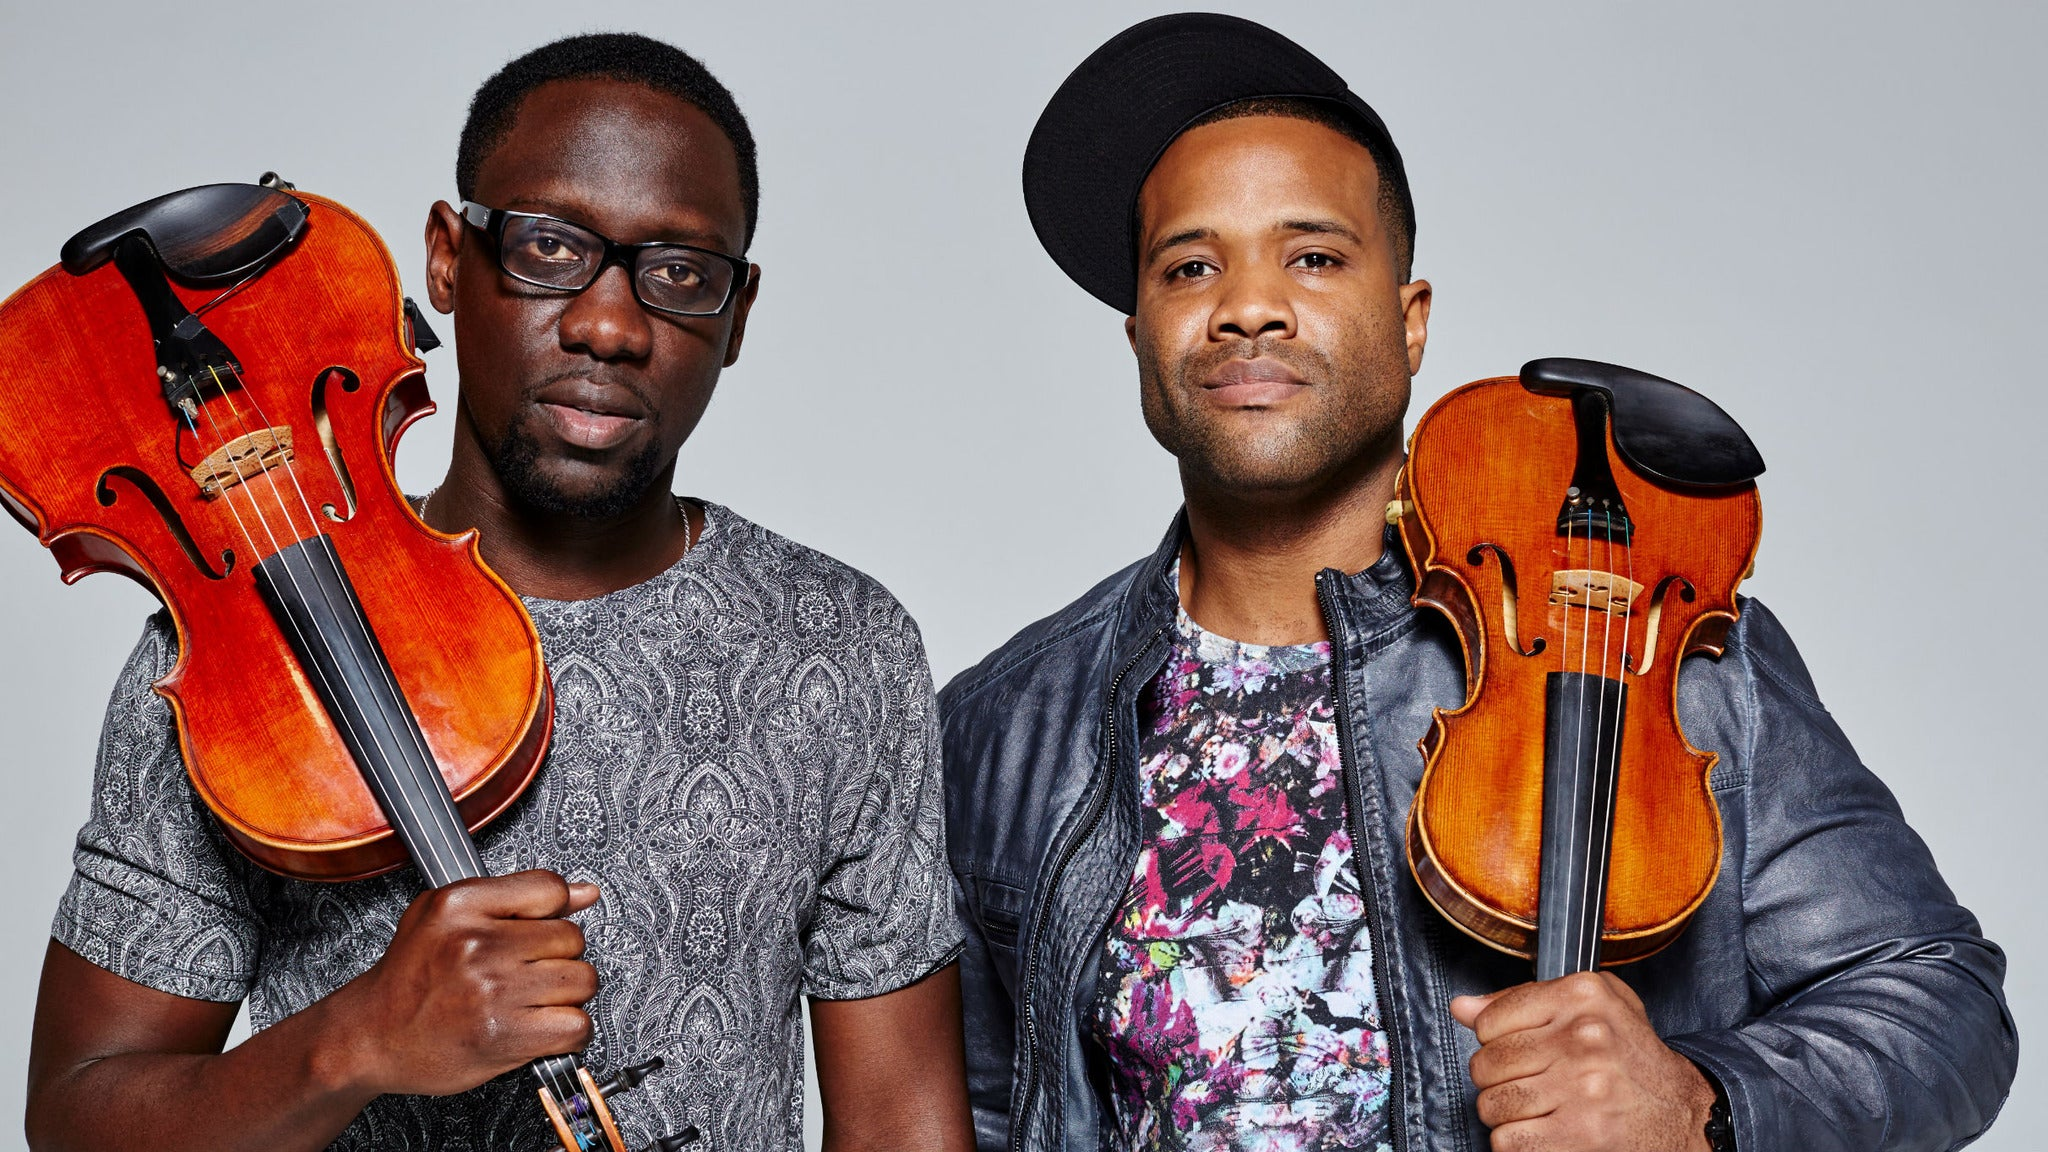 Black Violin at California Center for the Arts